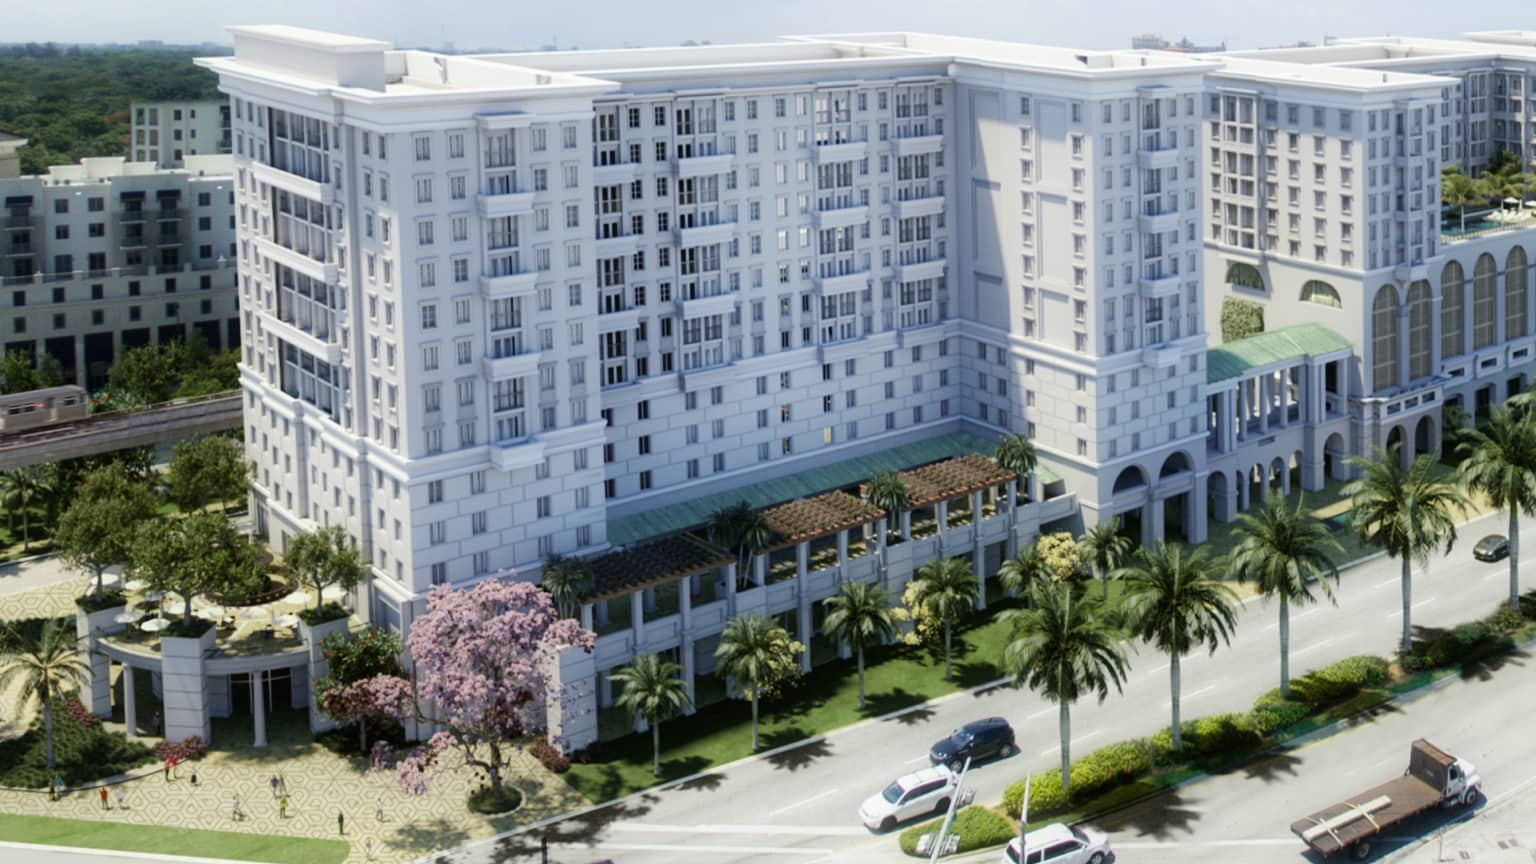 An illustration of the exterior of the Life Time Living in Coral Gables, Florida